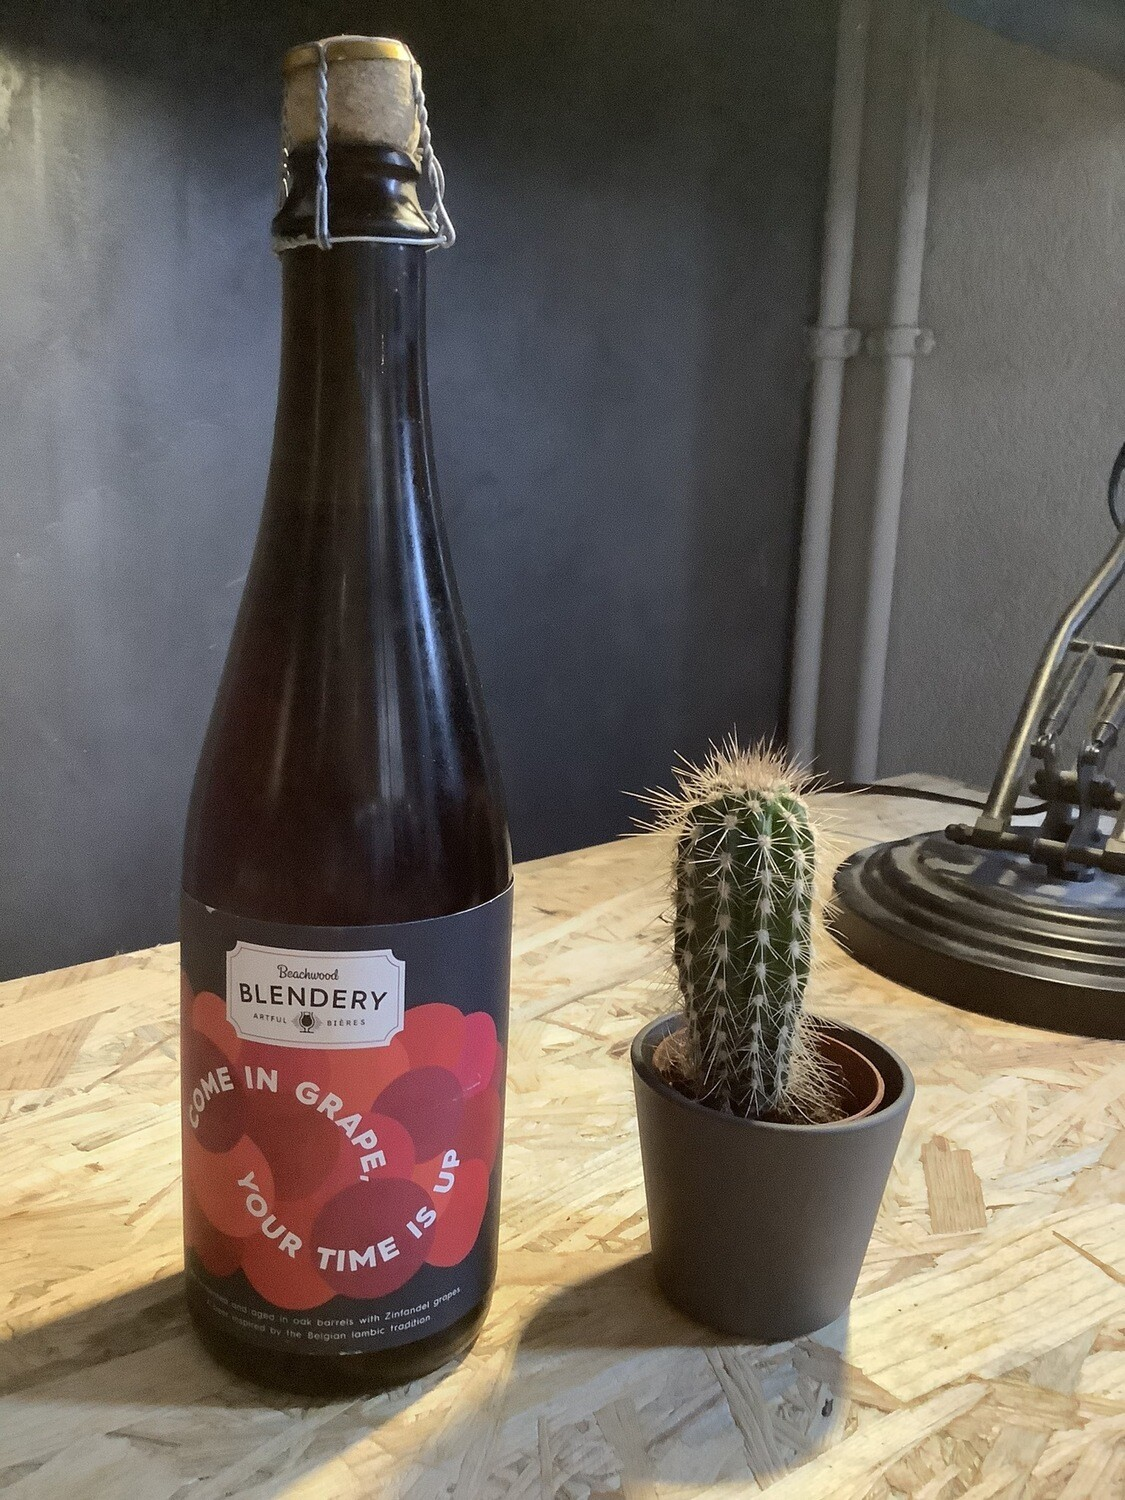 Beachwood Blendery - Come in grape, your Time is up - 8,5% - 50cl